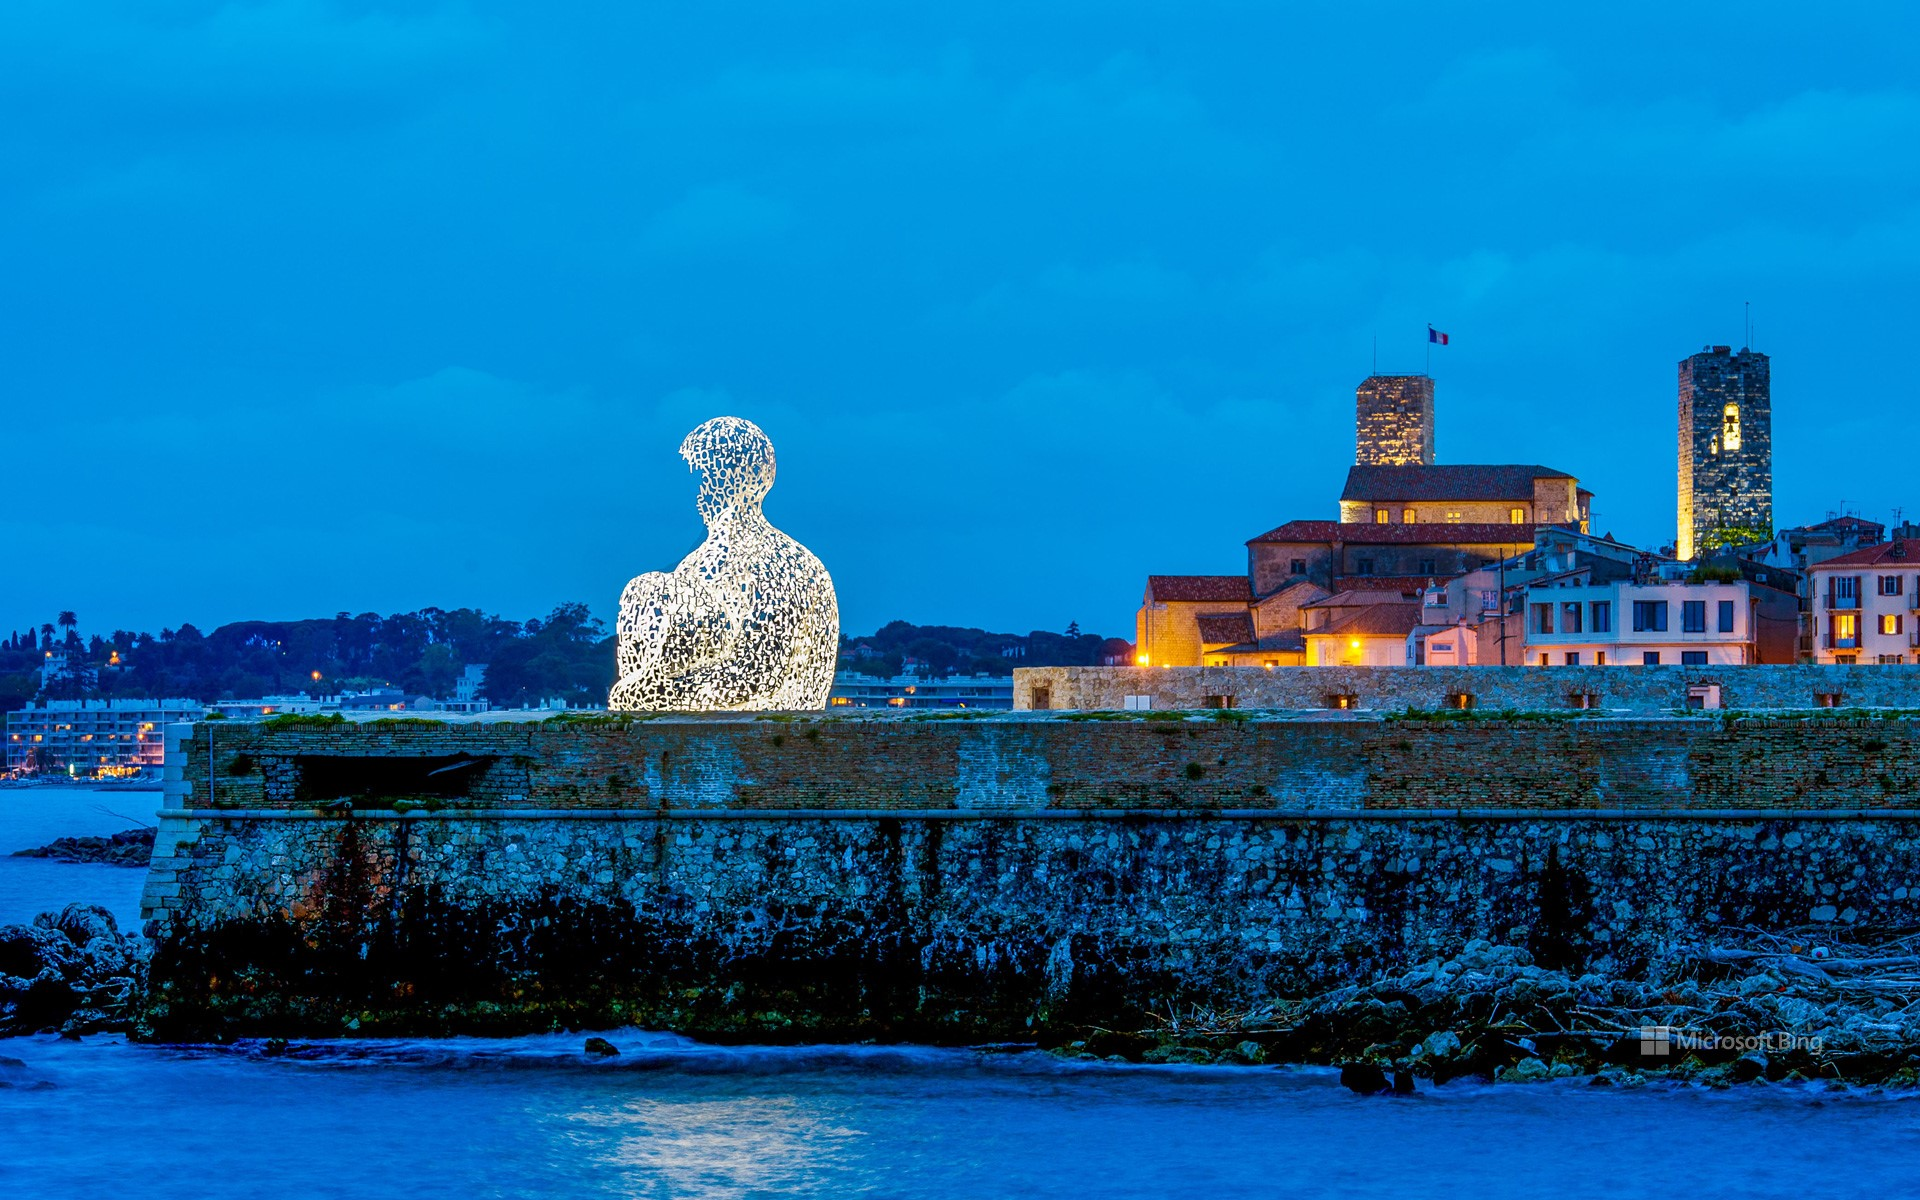 """Sculpture created by Catalan artist Jaume Plensa entitled """"Nomade"""", old town of Antibes, Alpes-Maritimes"""